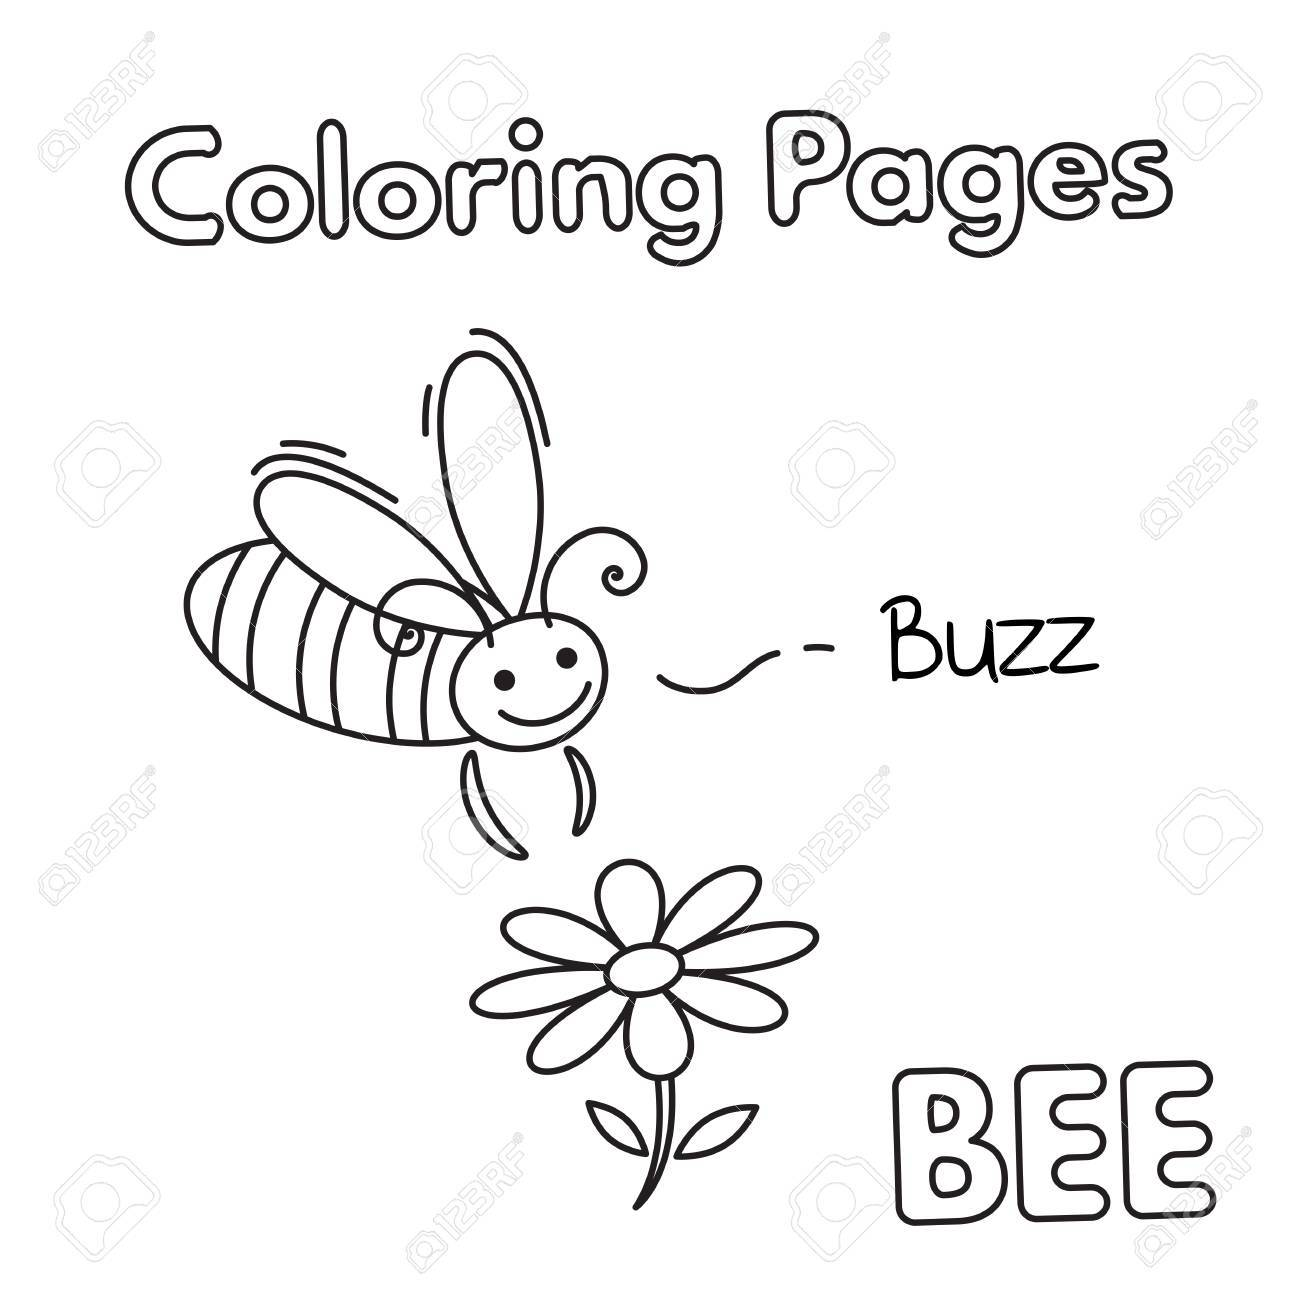 Cartoon Bee Coloring Book Royalty Free Cliparts Vectors And Stock Illustration Image 74693186